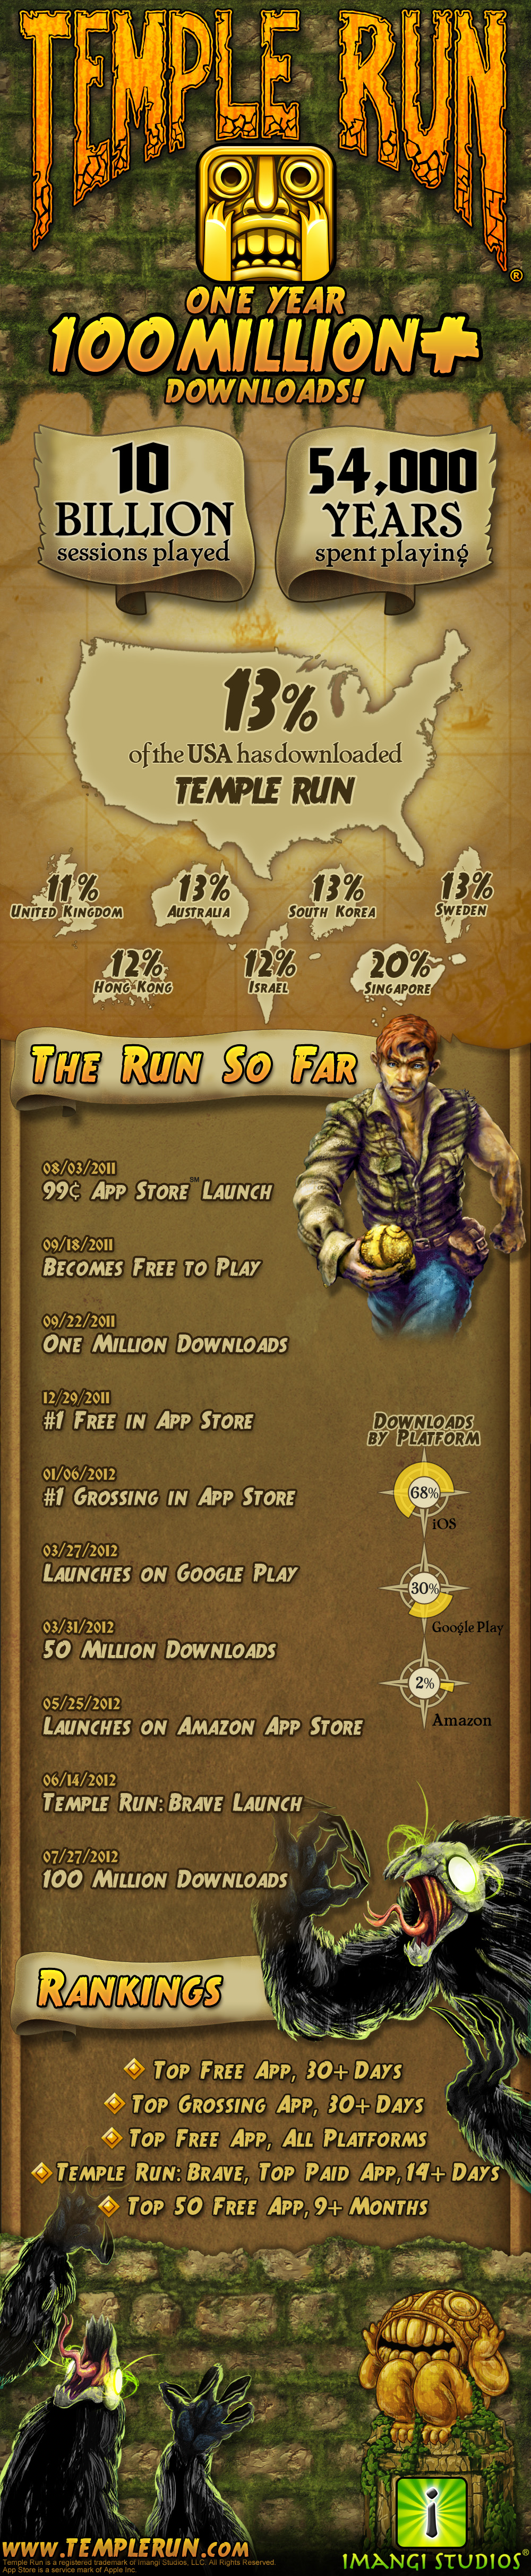 Temple Run' breaks 100 million downloads after one year